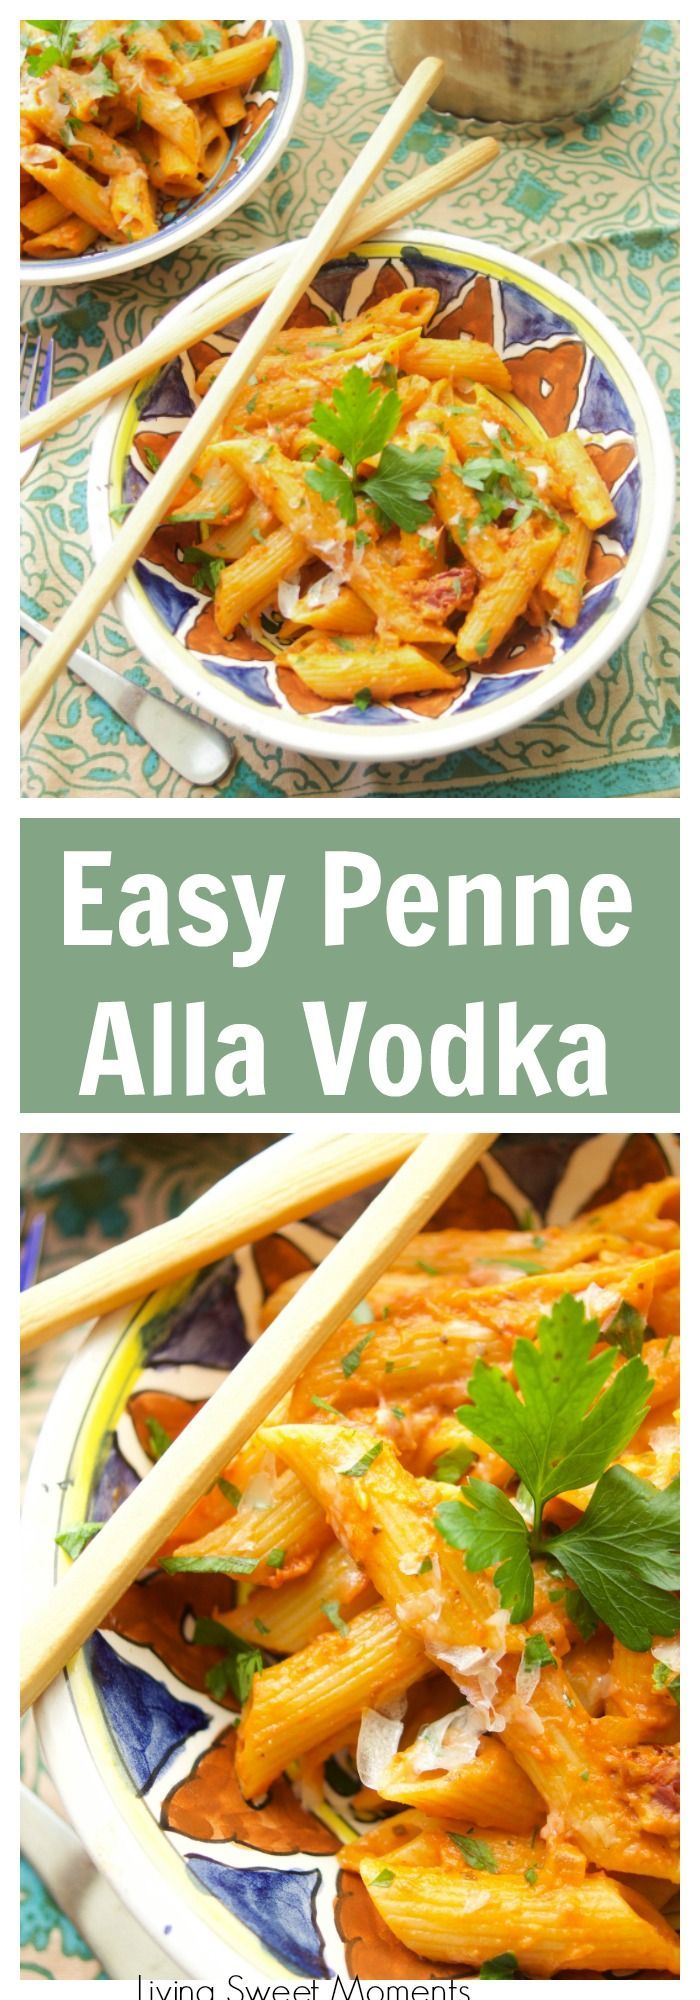 This easy and delicious Penne Alla Vodka recipe is ready in 20 minutes or less and is the perfect quick weeknight dinner idea for the family. Vegetarian too #ad #simmeredintradition